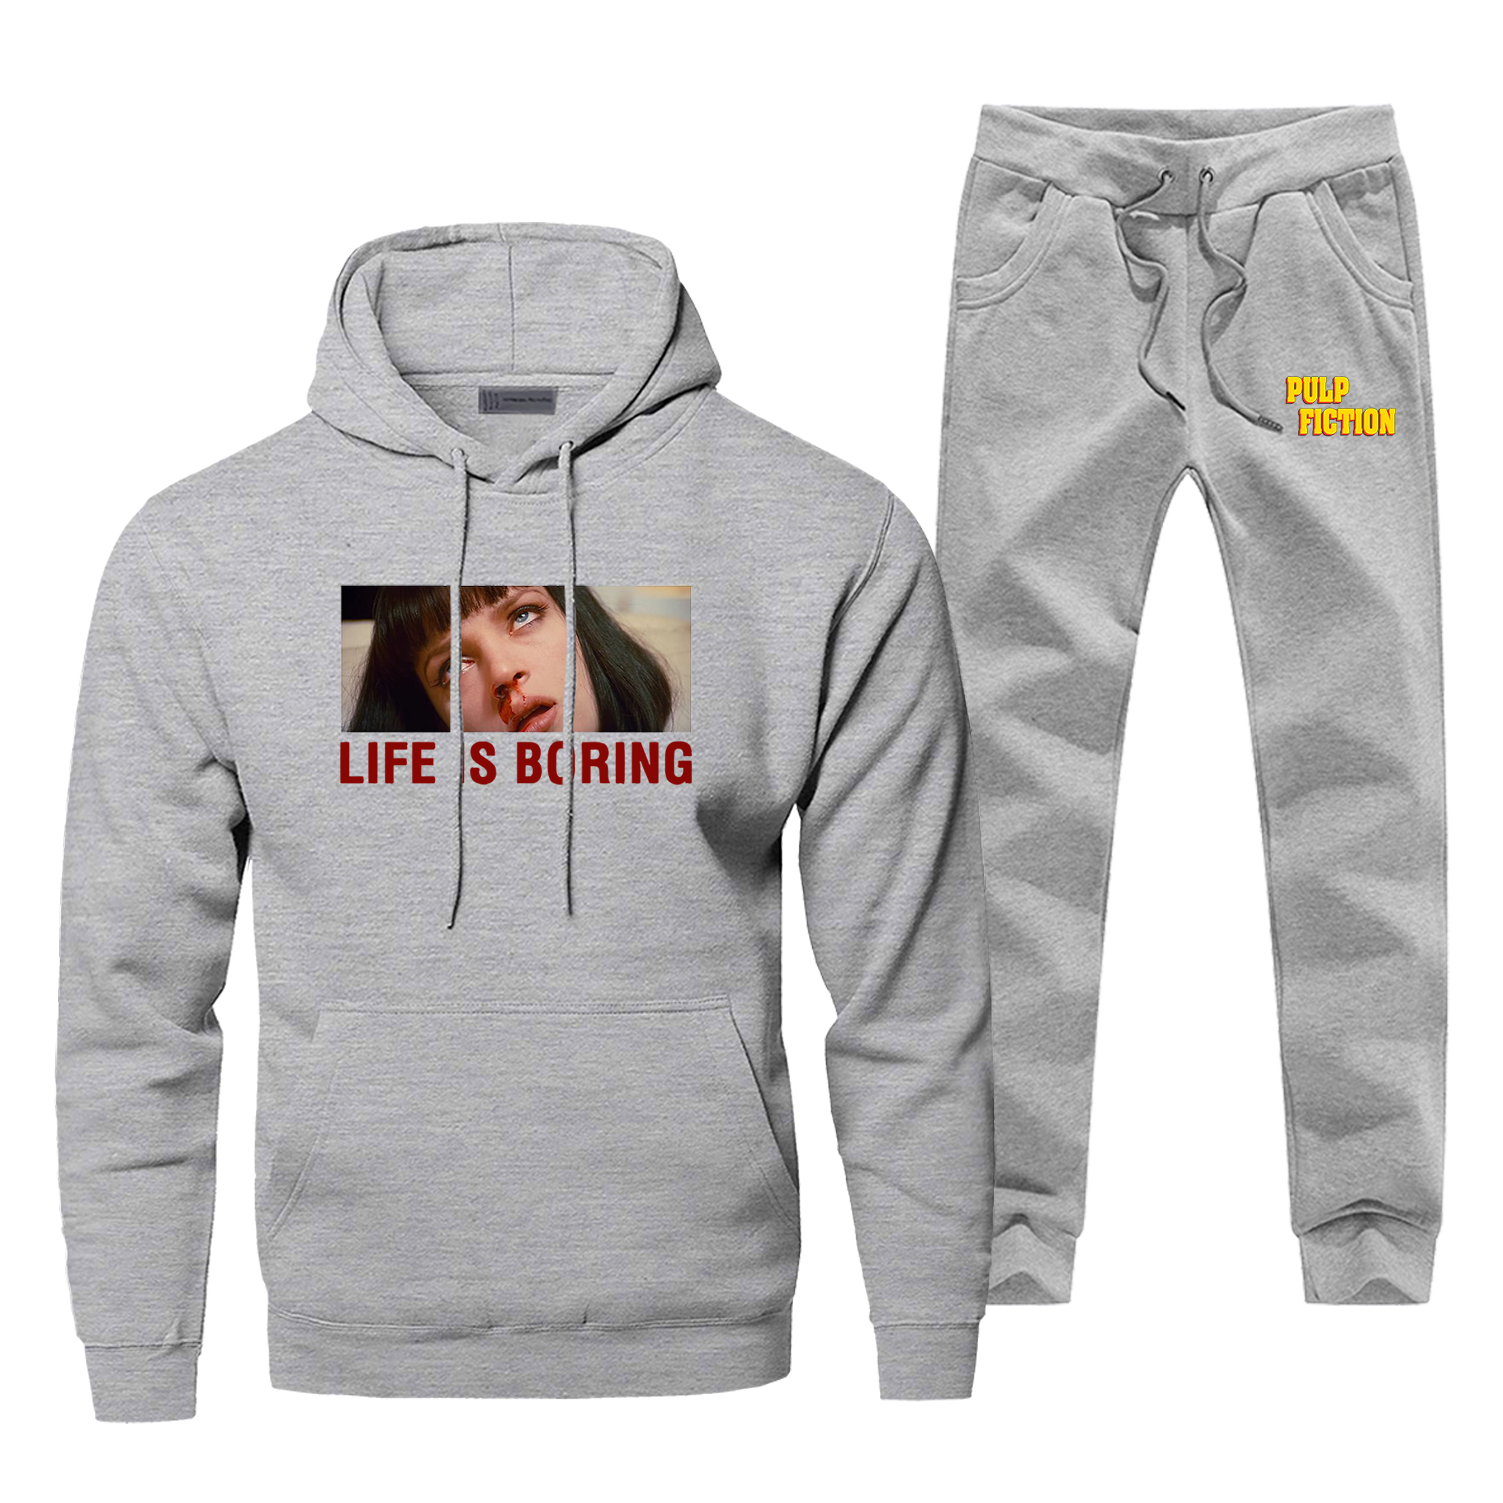 Leon Life Is Boring Hoodies Pants Set Men Hoody Sweatshirt Mens Hoodies Pollover 2 Piece Set Streetwear Male Classic Sweatshirts